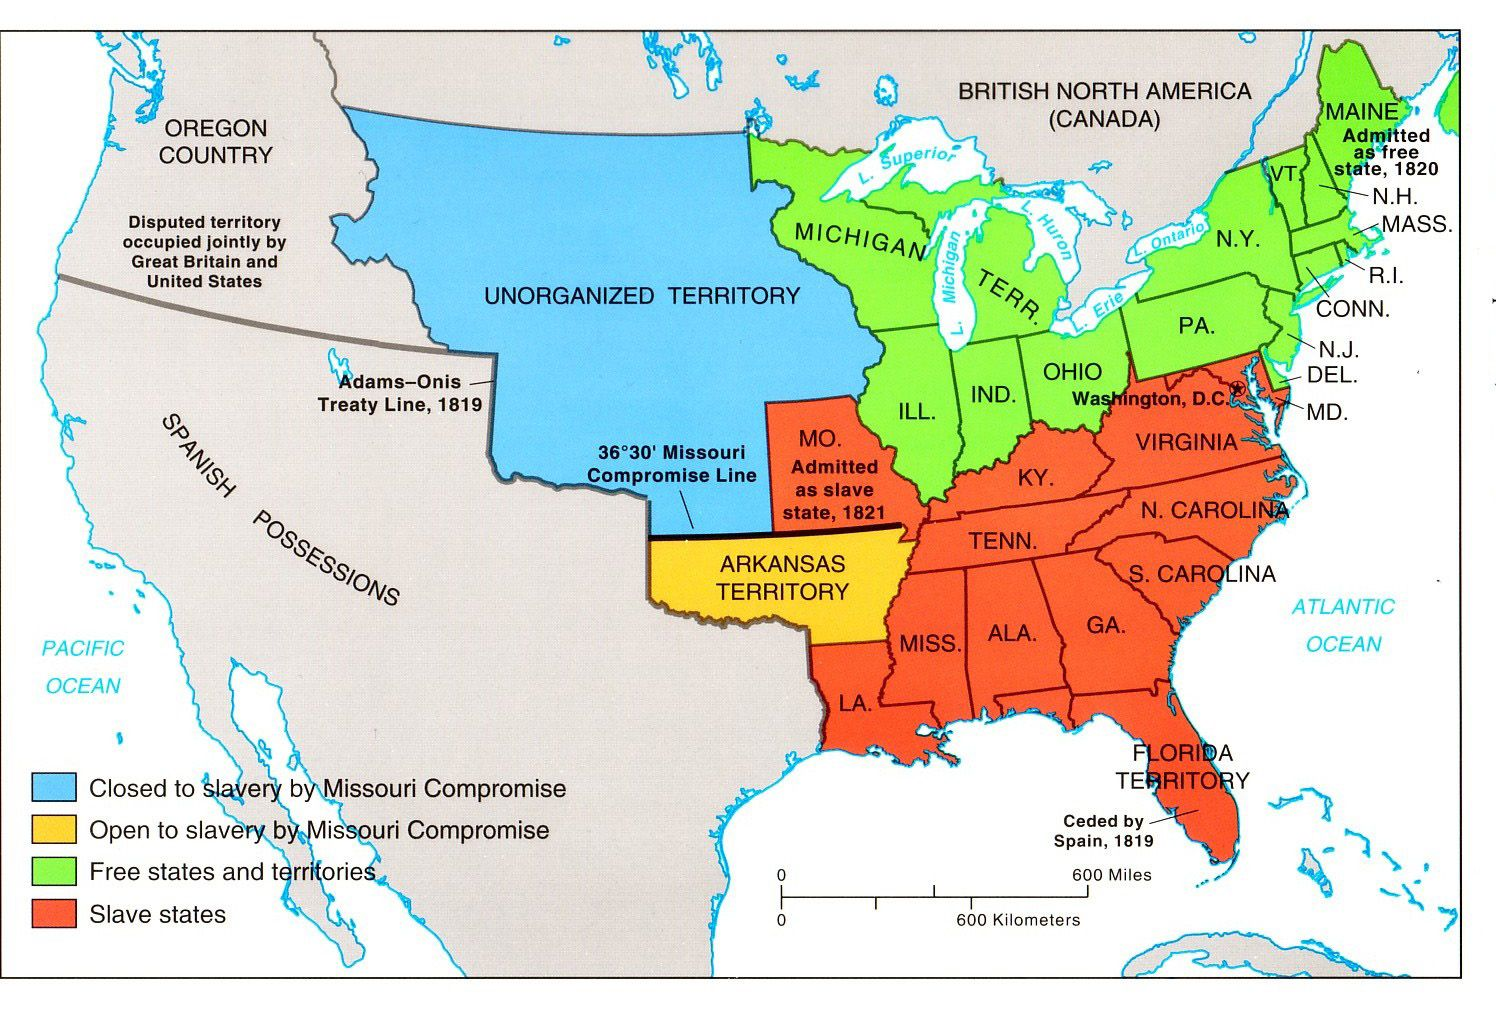 The United States in 1819 the light orange and light green areas